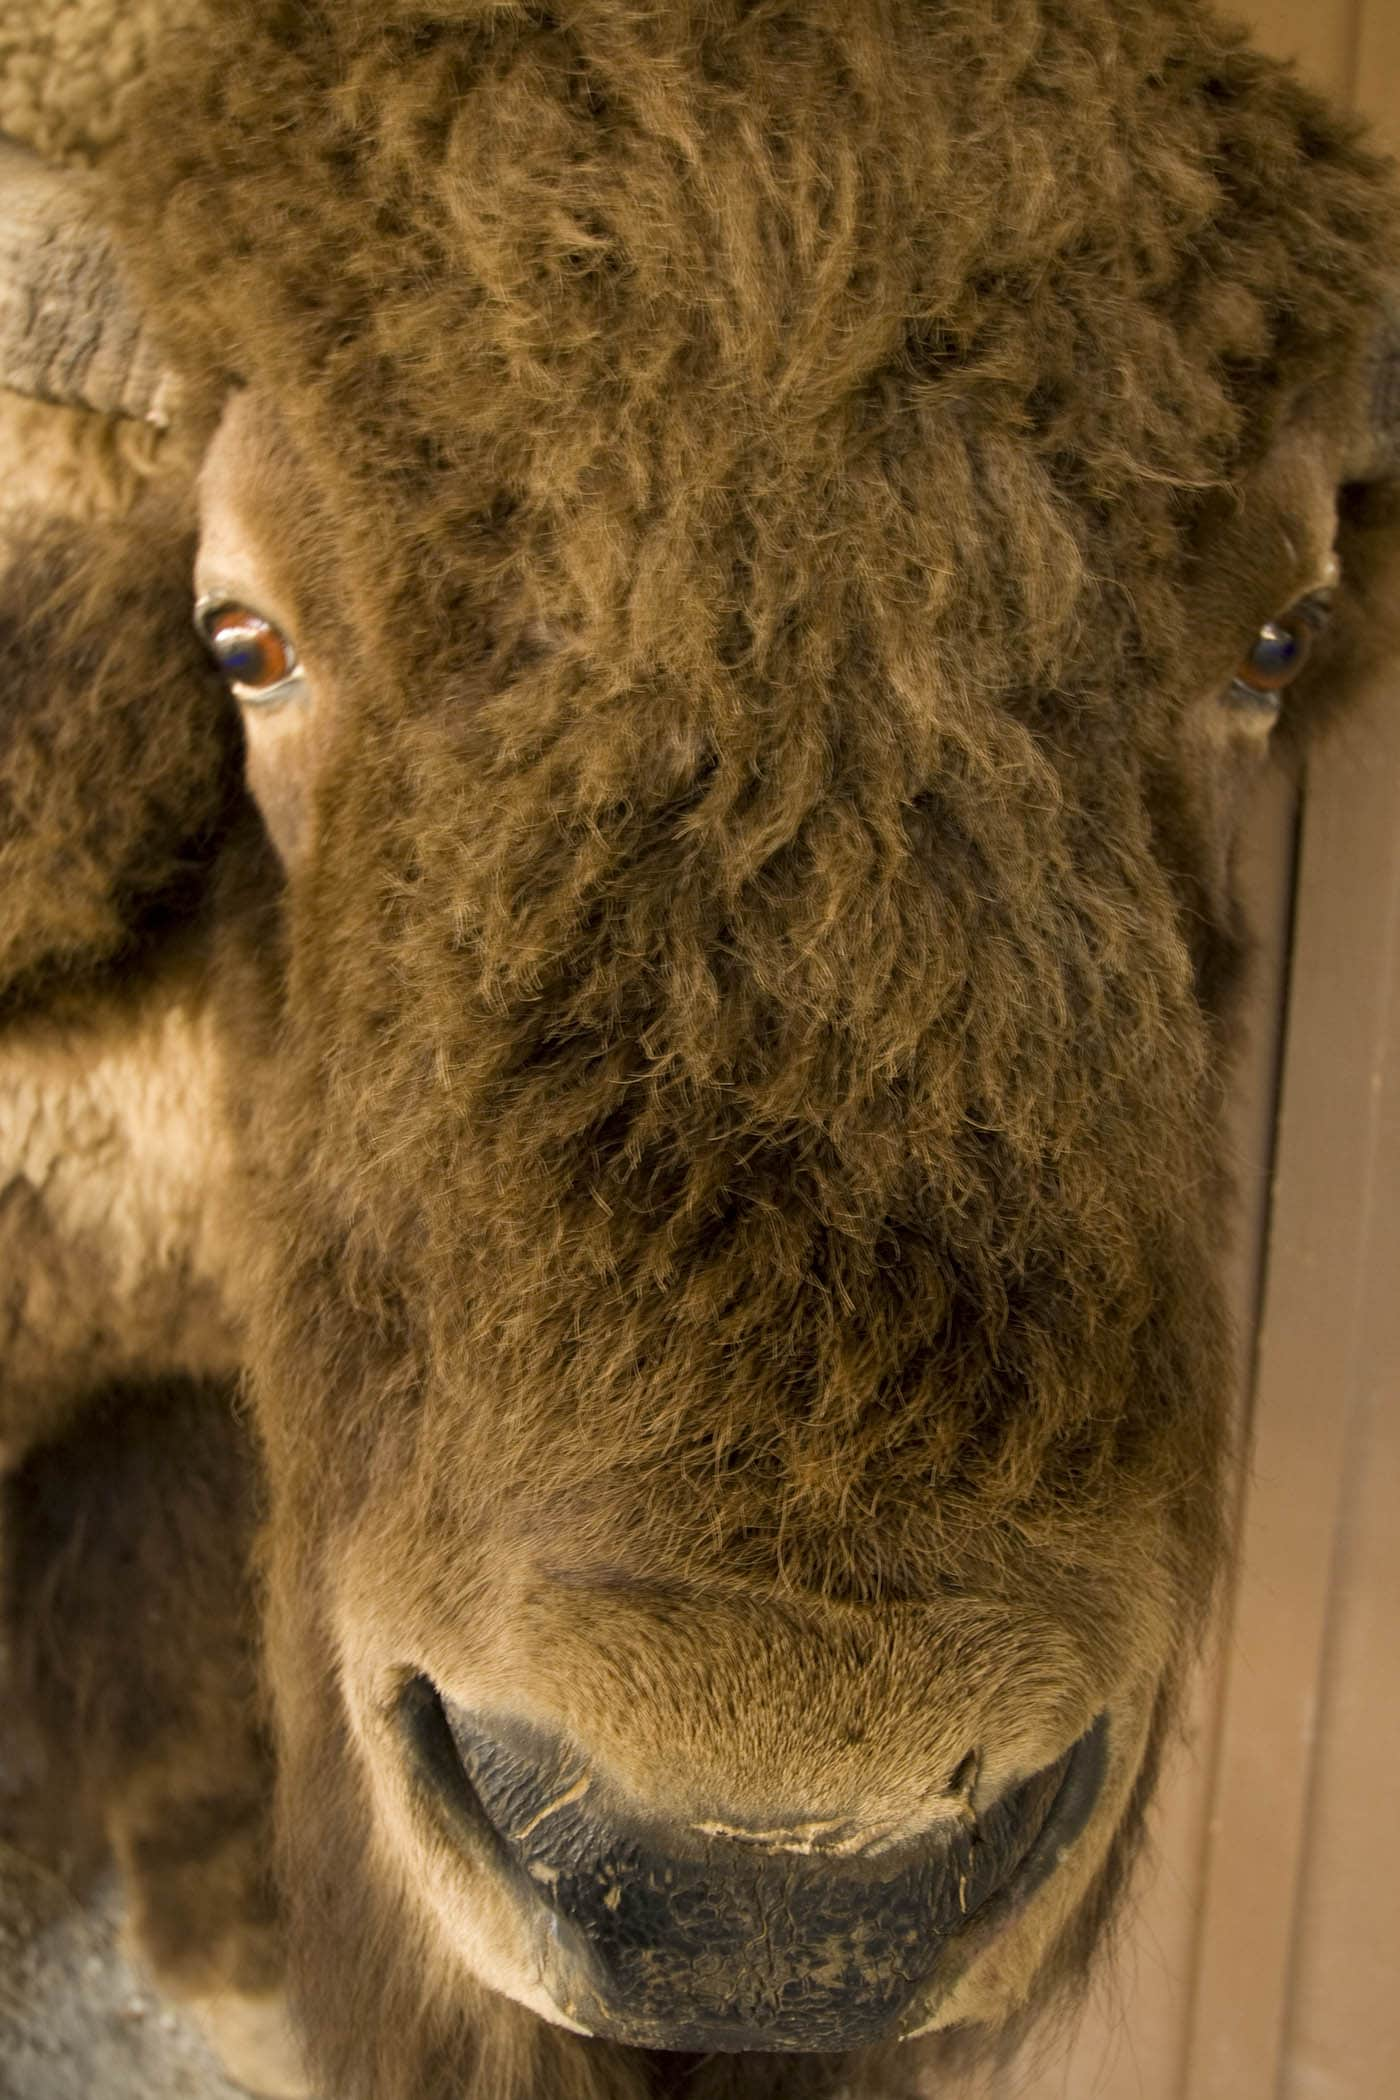 Buffalo at Wall Drug Store in Wall, South Dakota